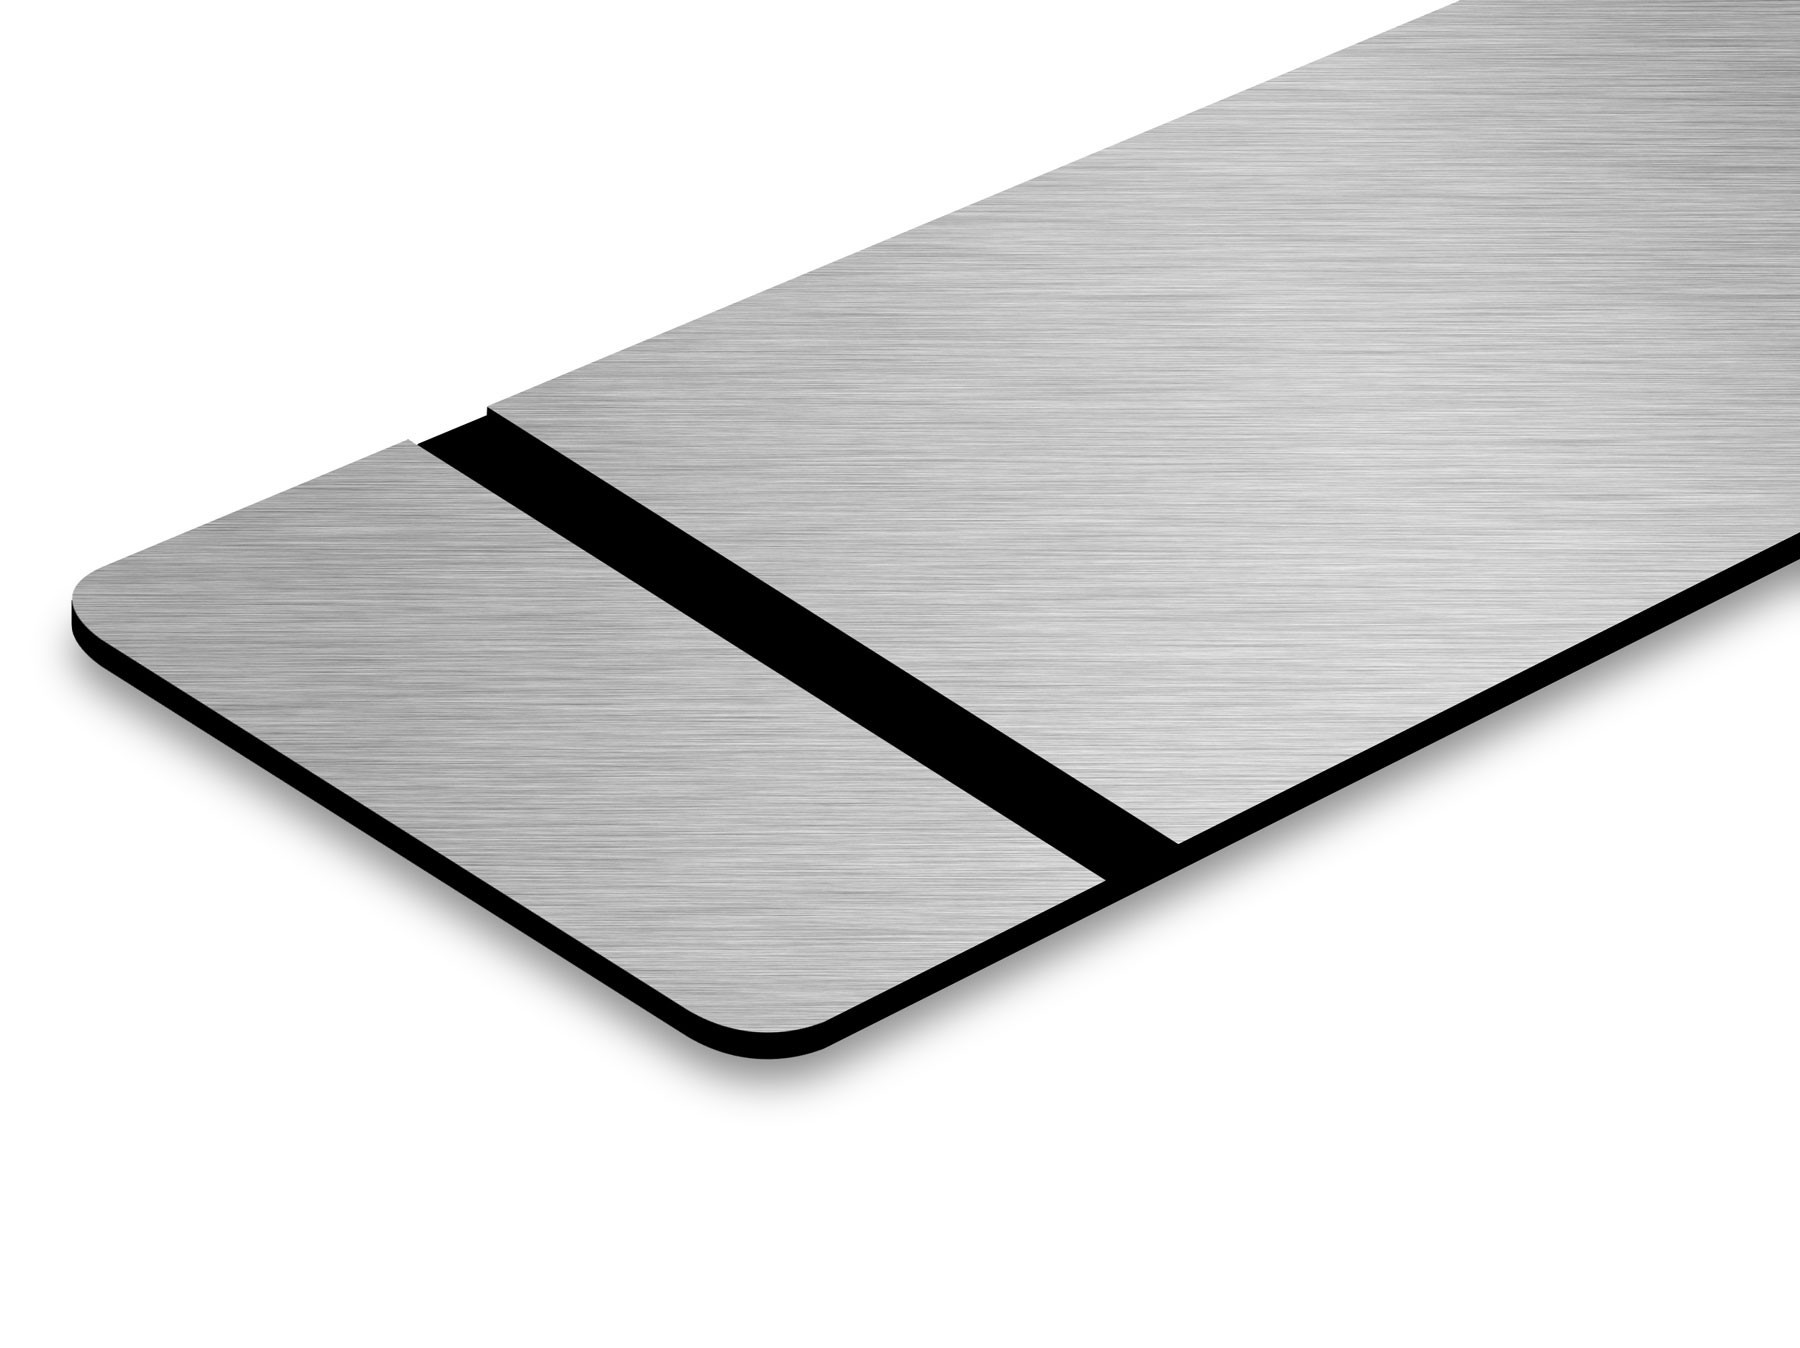 TroLase Thins, Brushed Silver/Black, 2ply, 0.5 mm